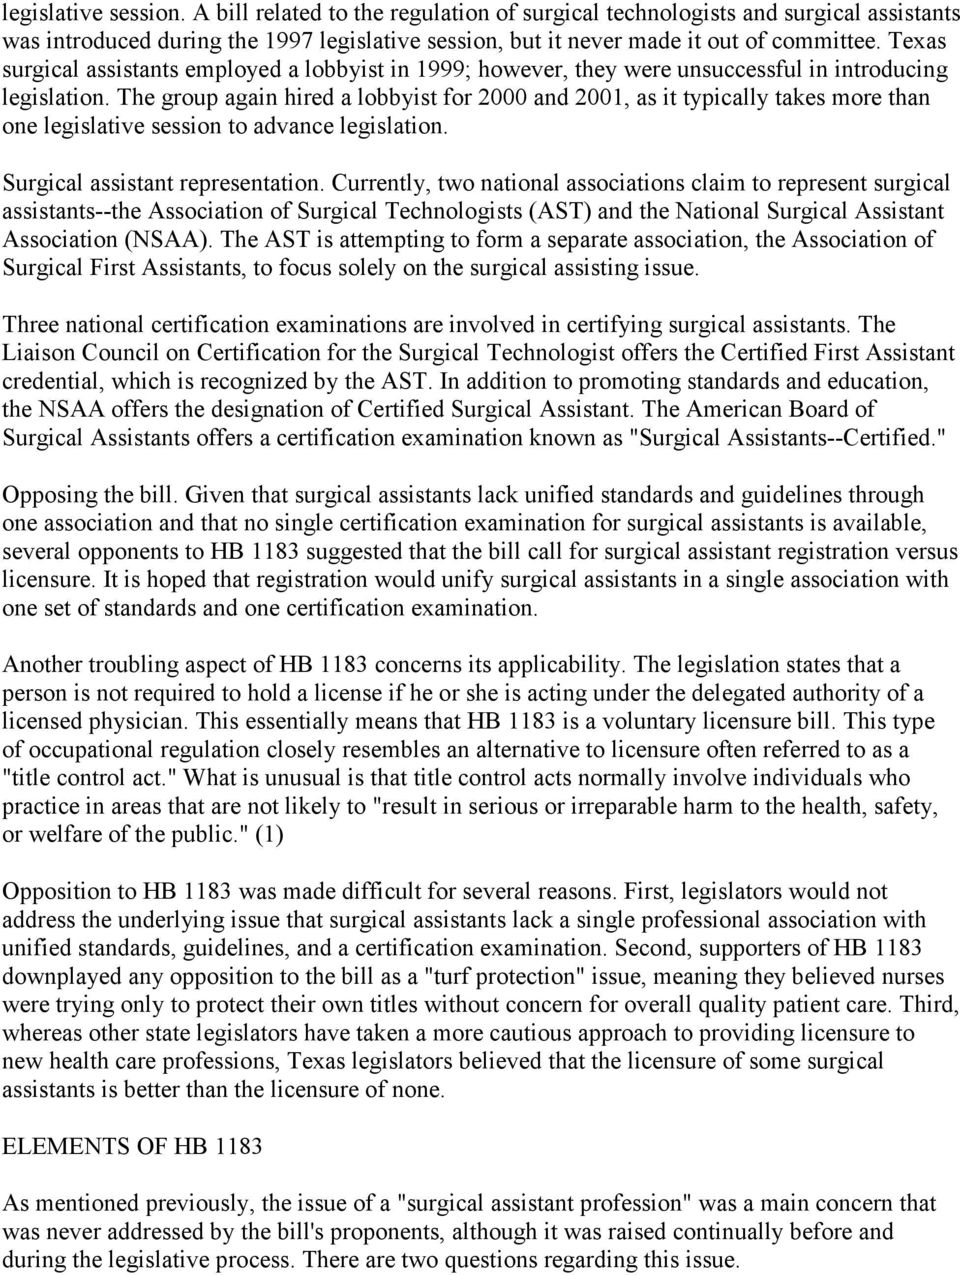 Licensing Surgical Assistants In Texas Health Policy Issues Pdf